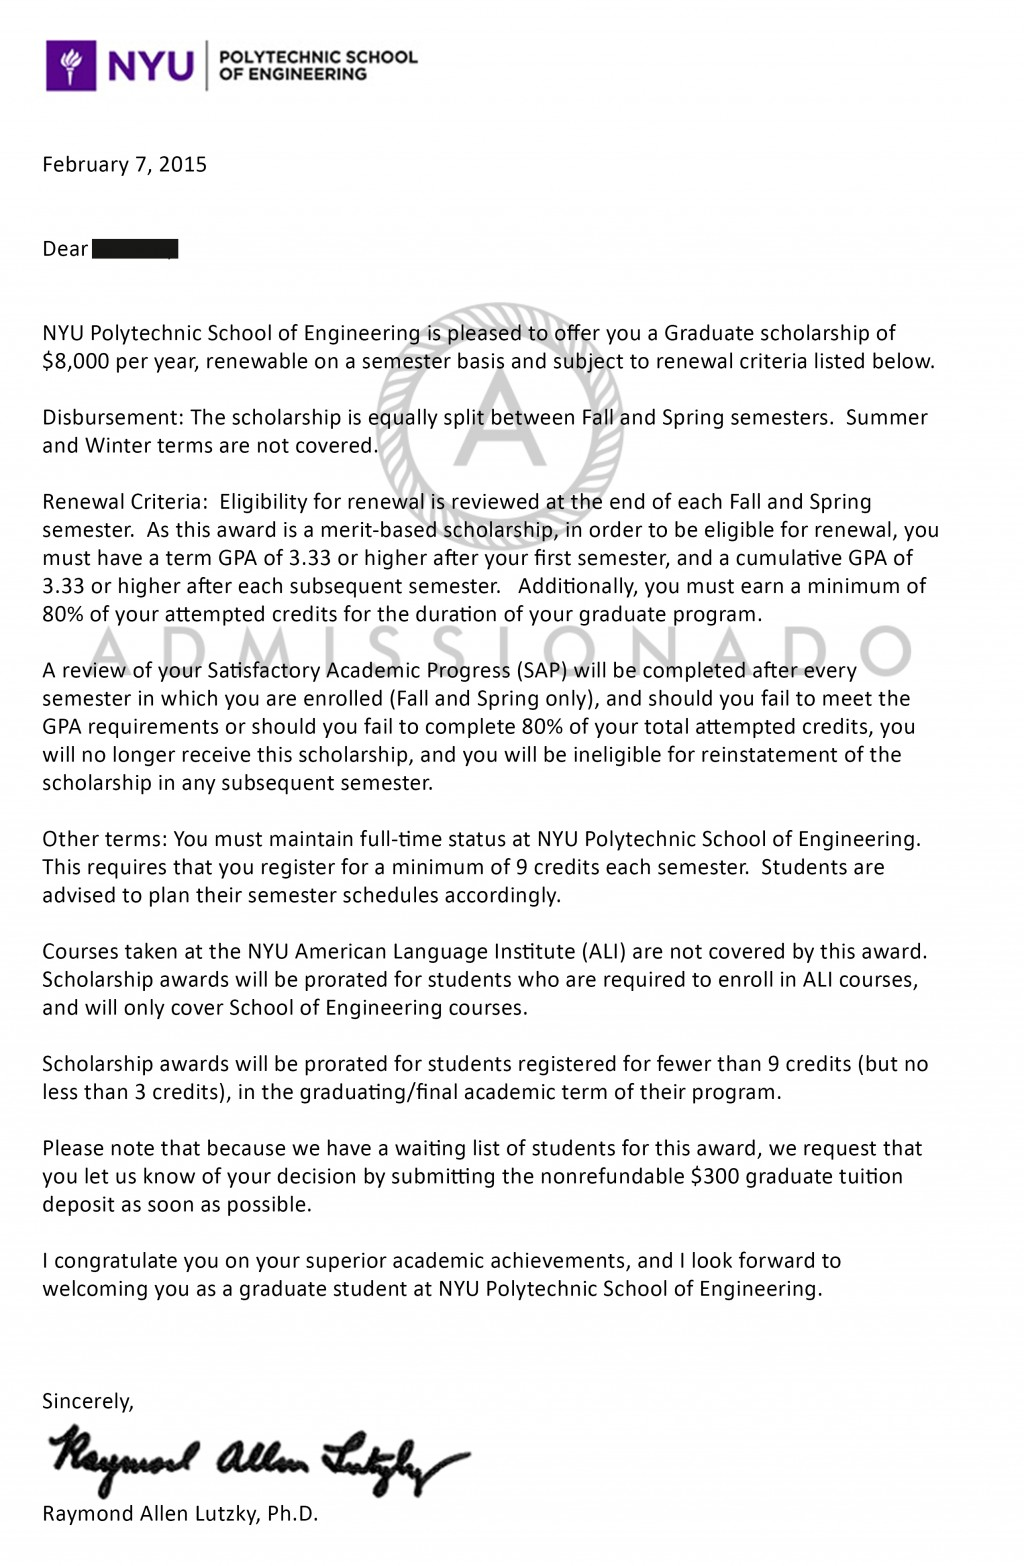 001 Essay Requirements Example Xz Nyu Acceptance Frightening For Texas A&m Utsa How Many Essays Are Required 2019 Large